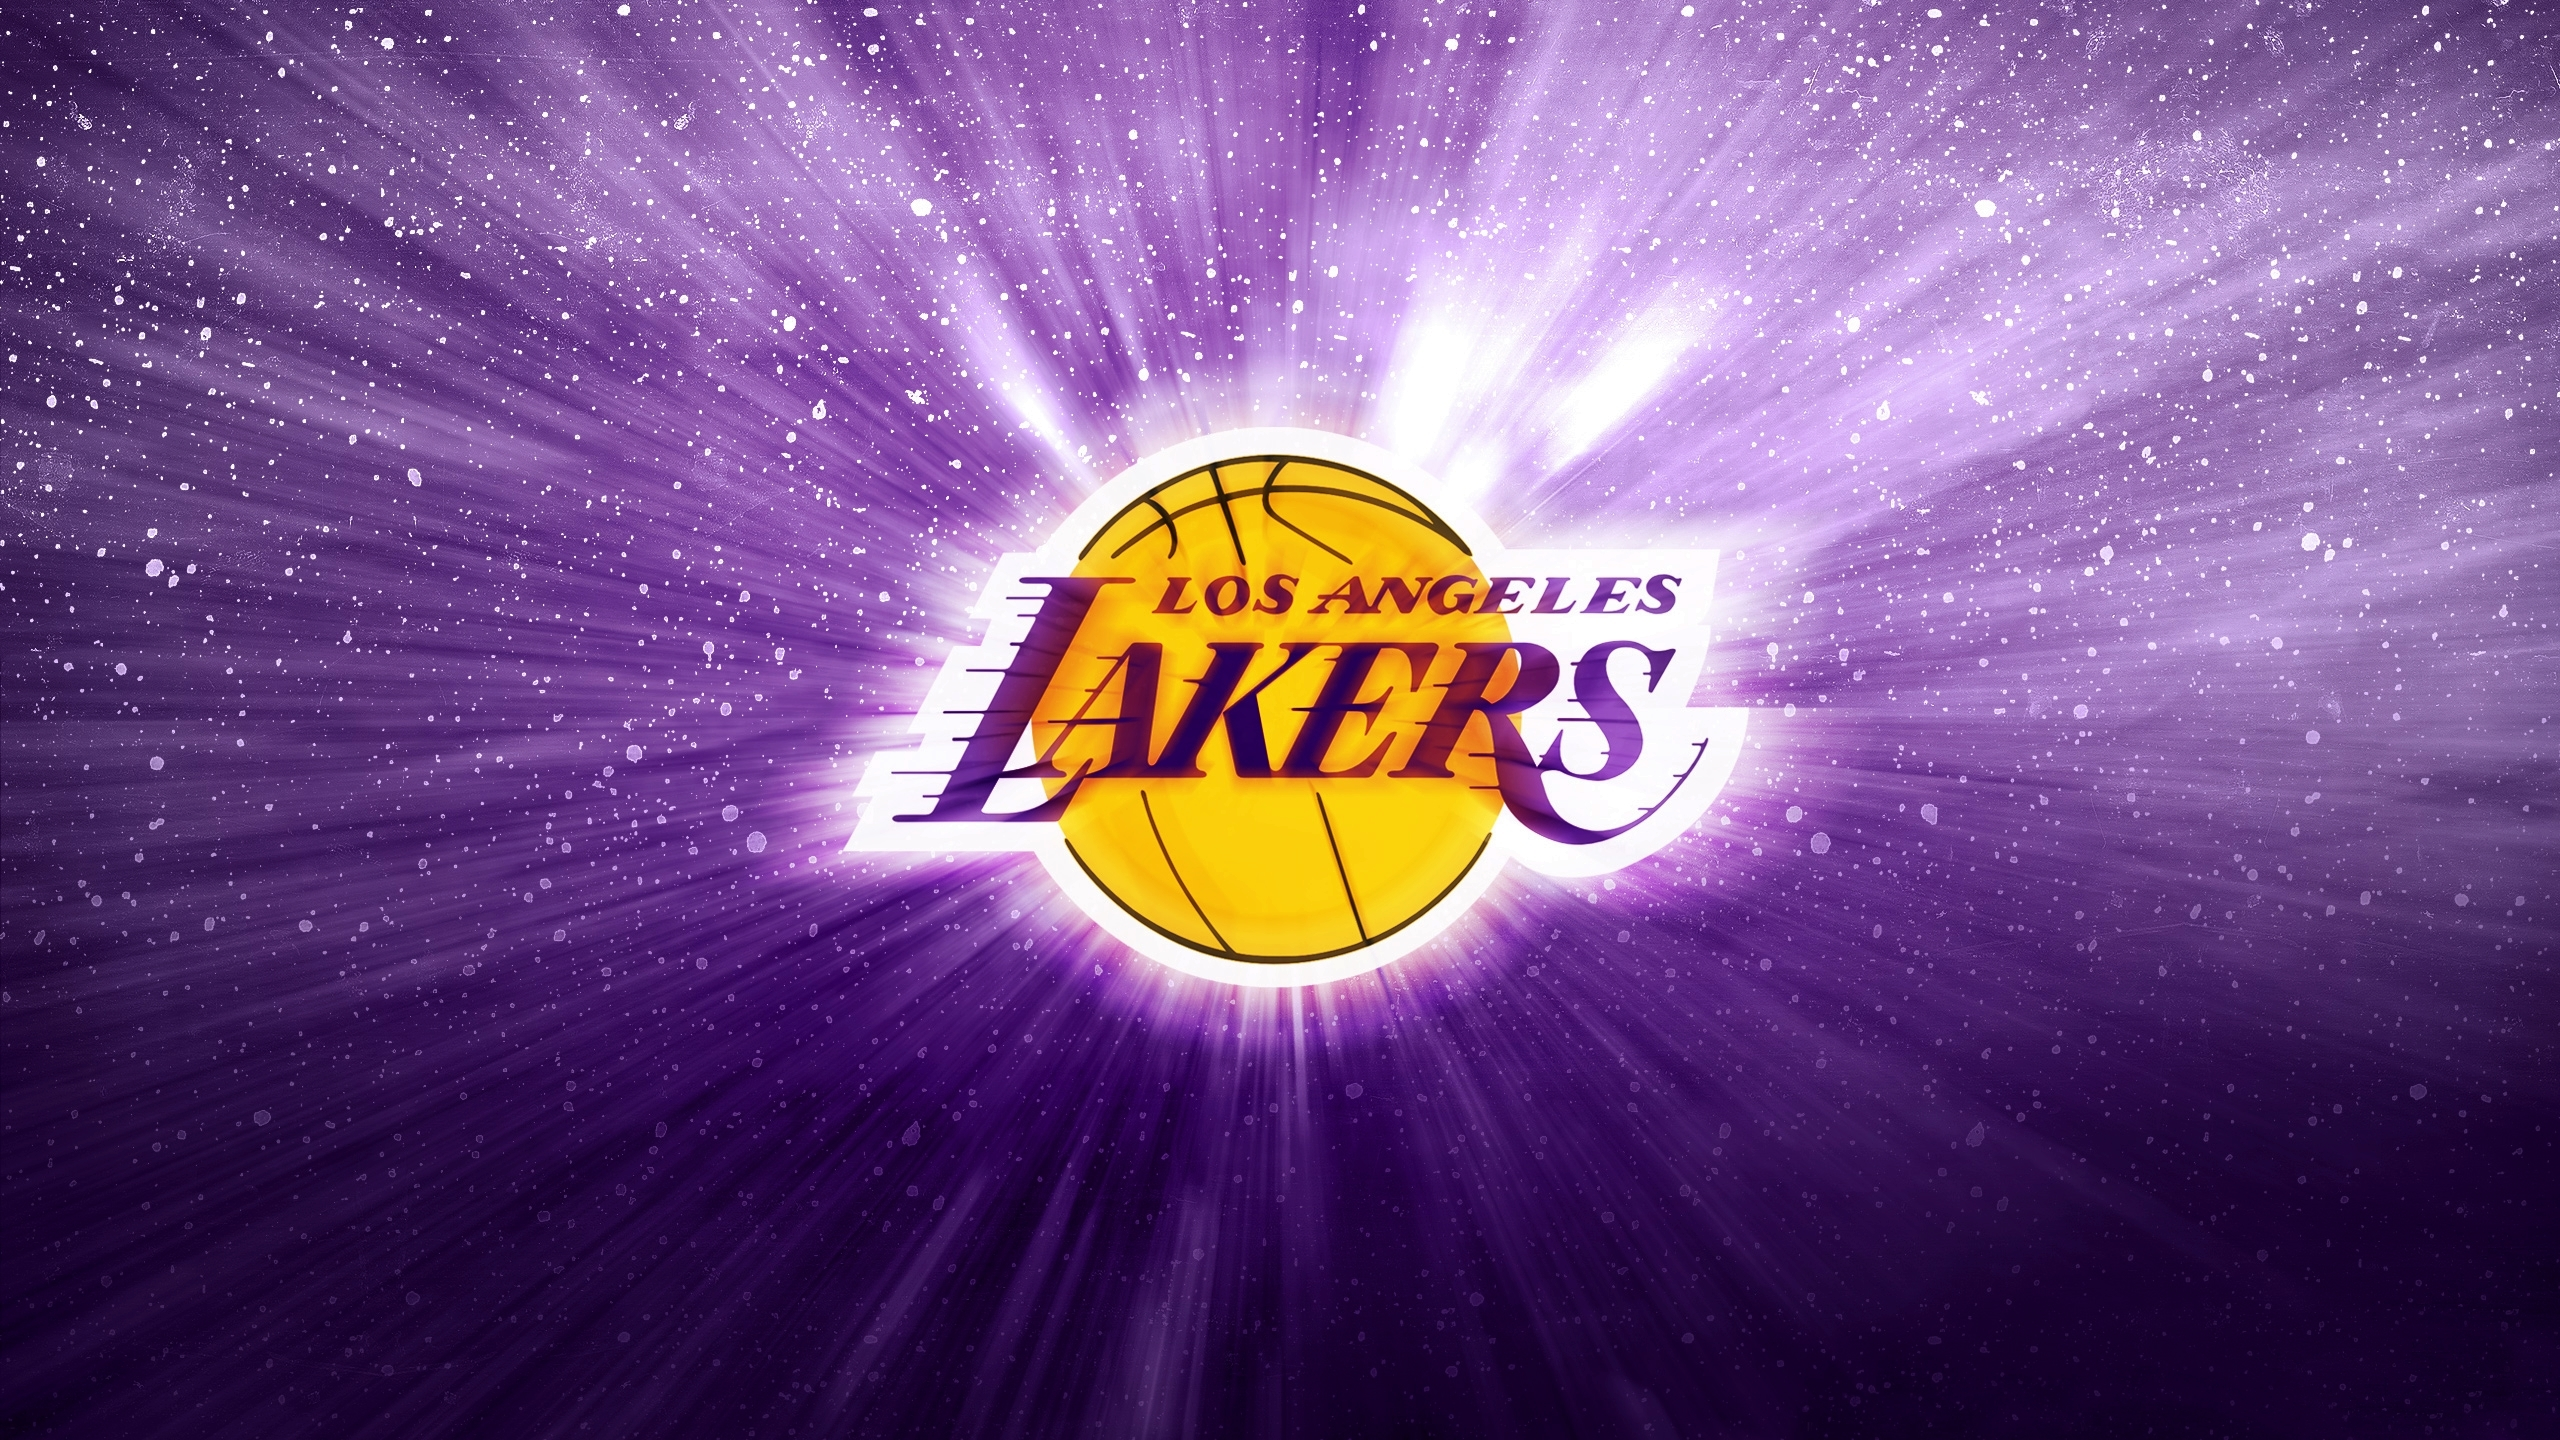 Los Angeles Lakers Wallpaper NBA Los Angeles Basketball Purple 2560x1440